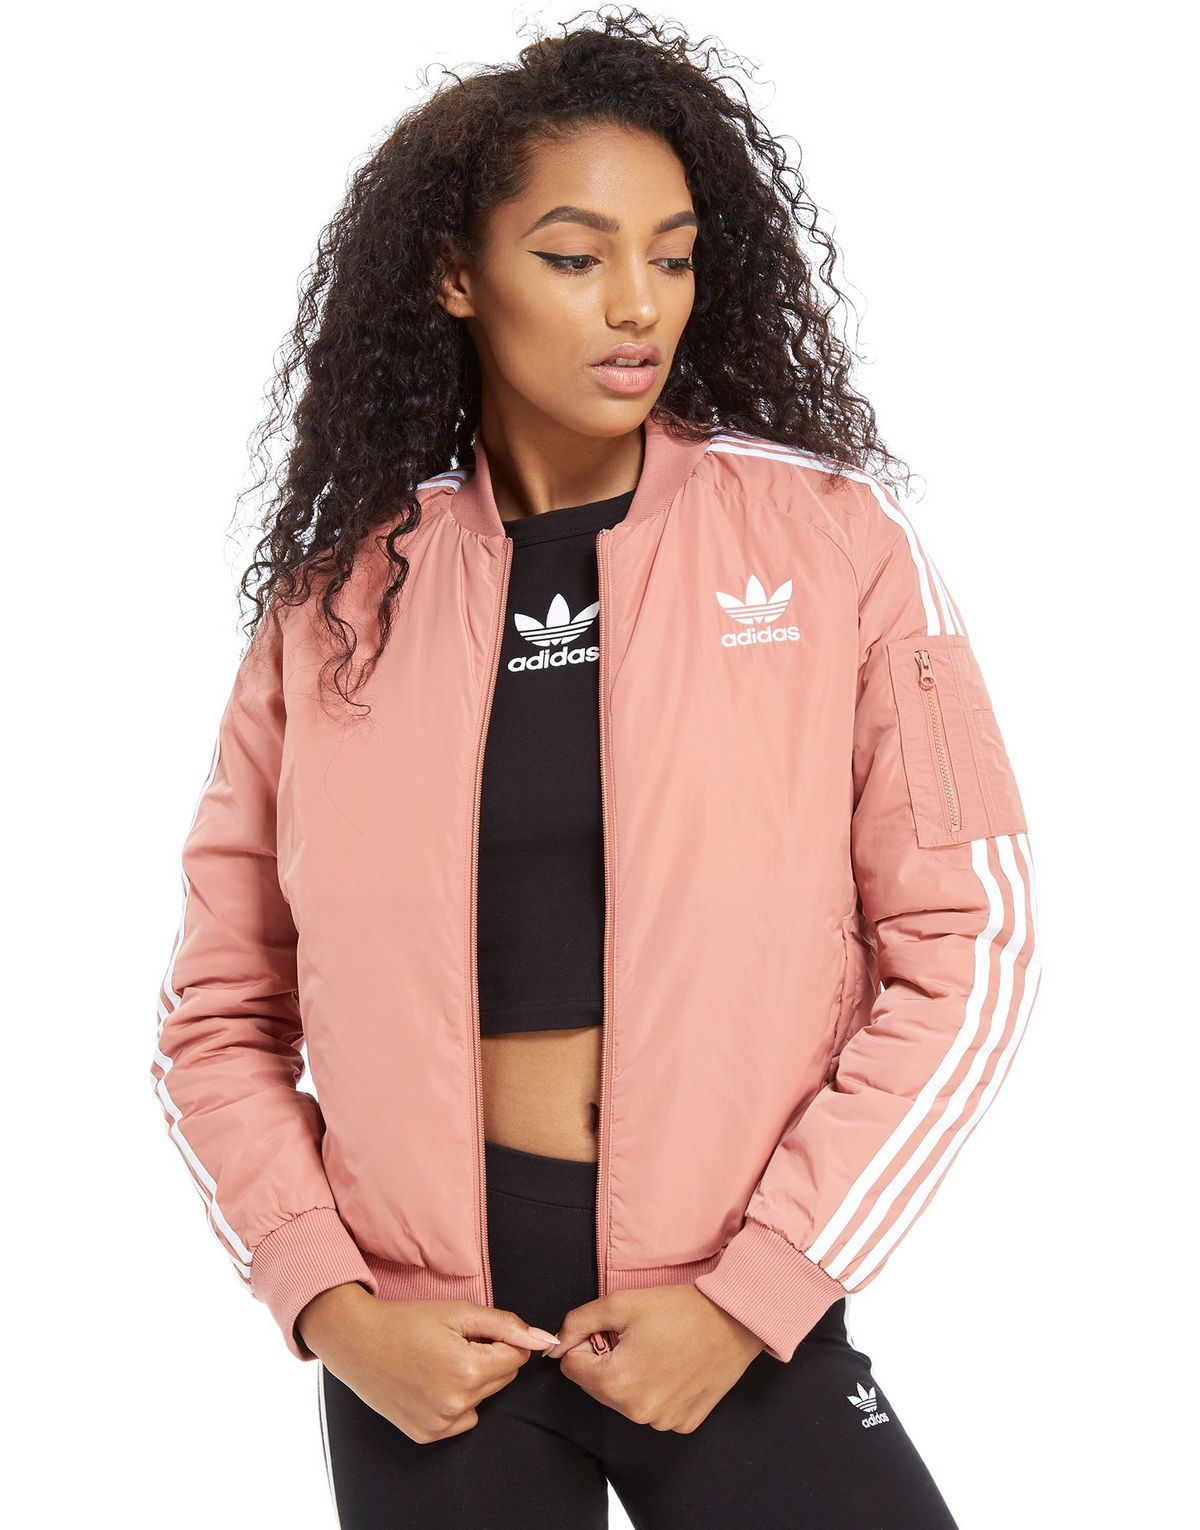 b972ff2d9adf adidas Originals Superstar Jacket